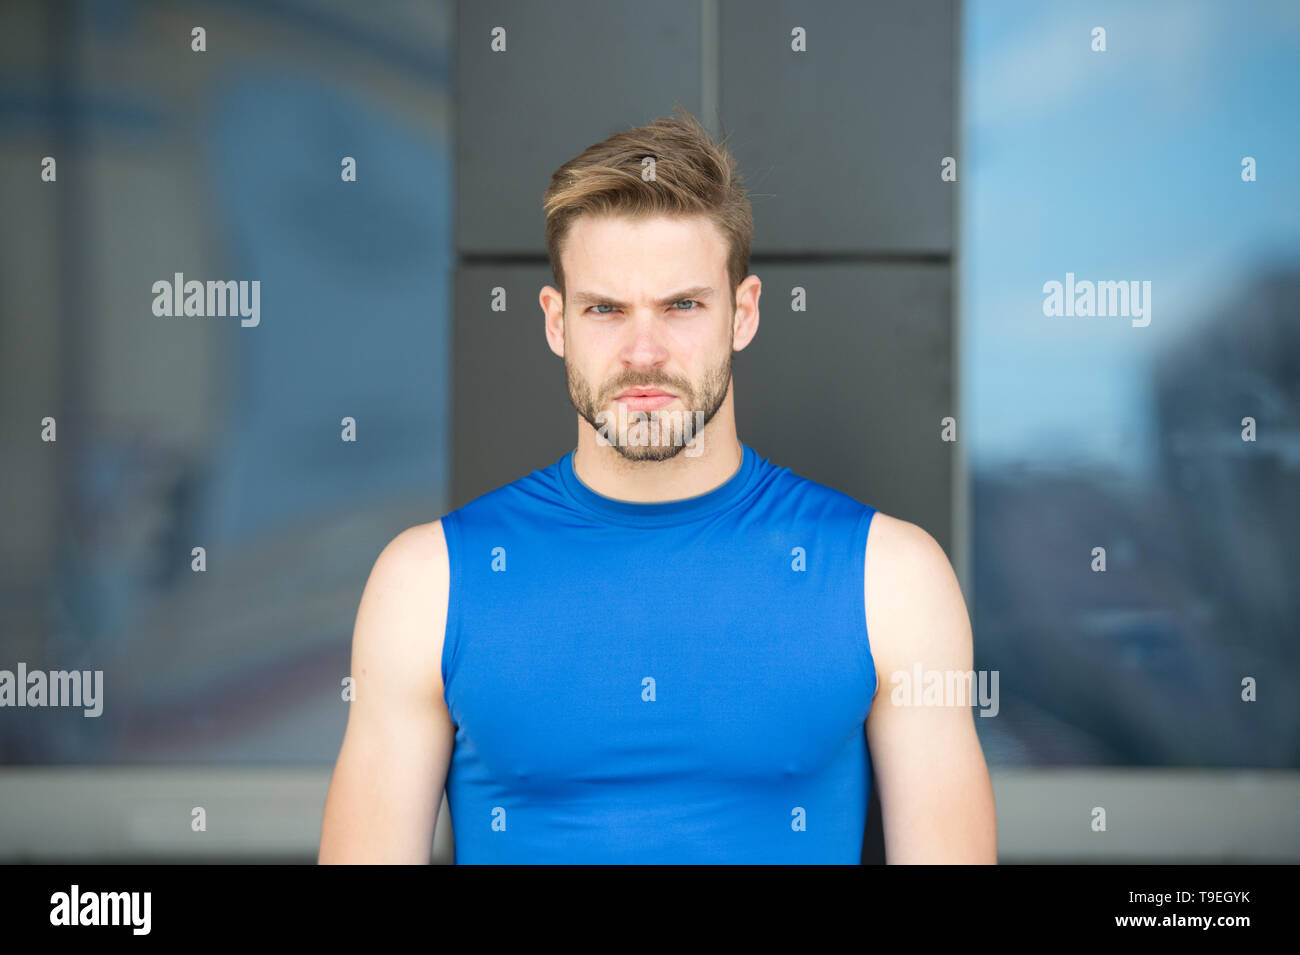 Man bristle serious face muscular shoulders, urban background, defocused. Metrosexual concept. Guy bearded and attractive cares about appearance. Man  - Stock Image